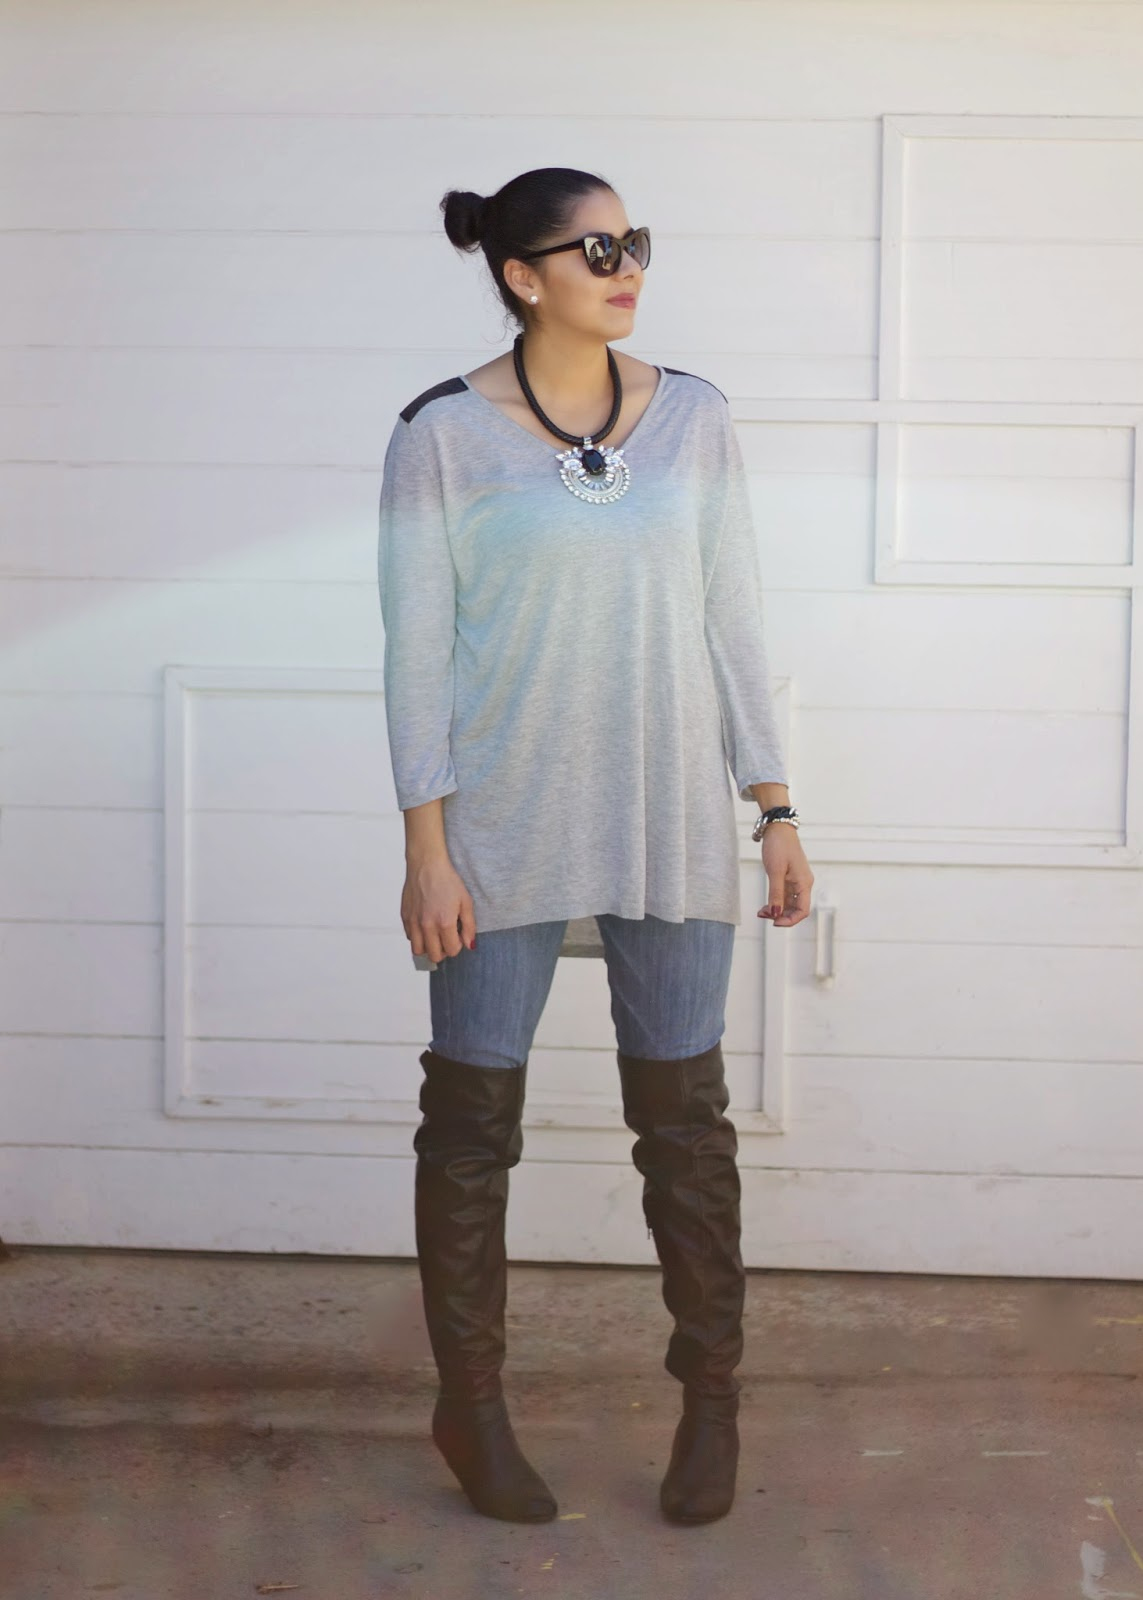 Charlotte Russe over the knee boots, black leather boots, Charlotte Russe black boots, how to wear black boots, pointed boots, how to wear pointed boots, boots with jeans, over the knee boots with jeans, casual way to wear over the knee boots